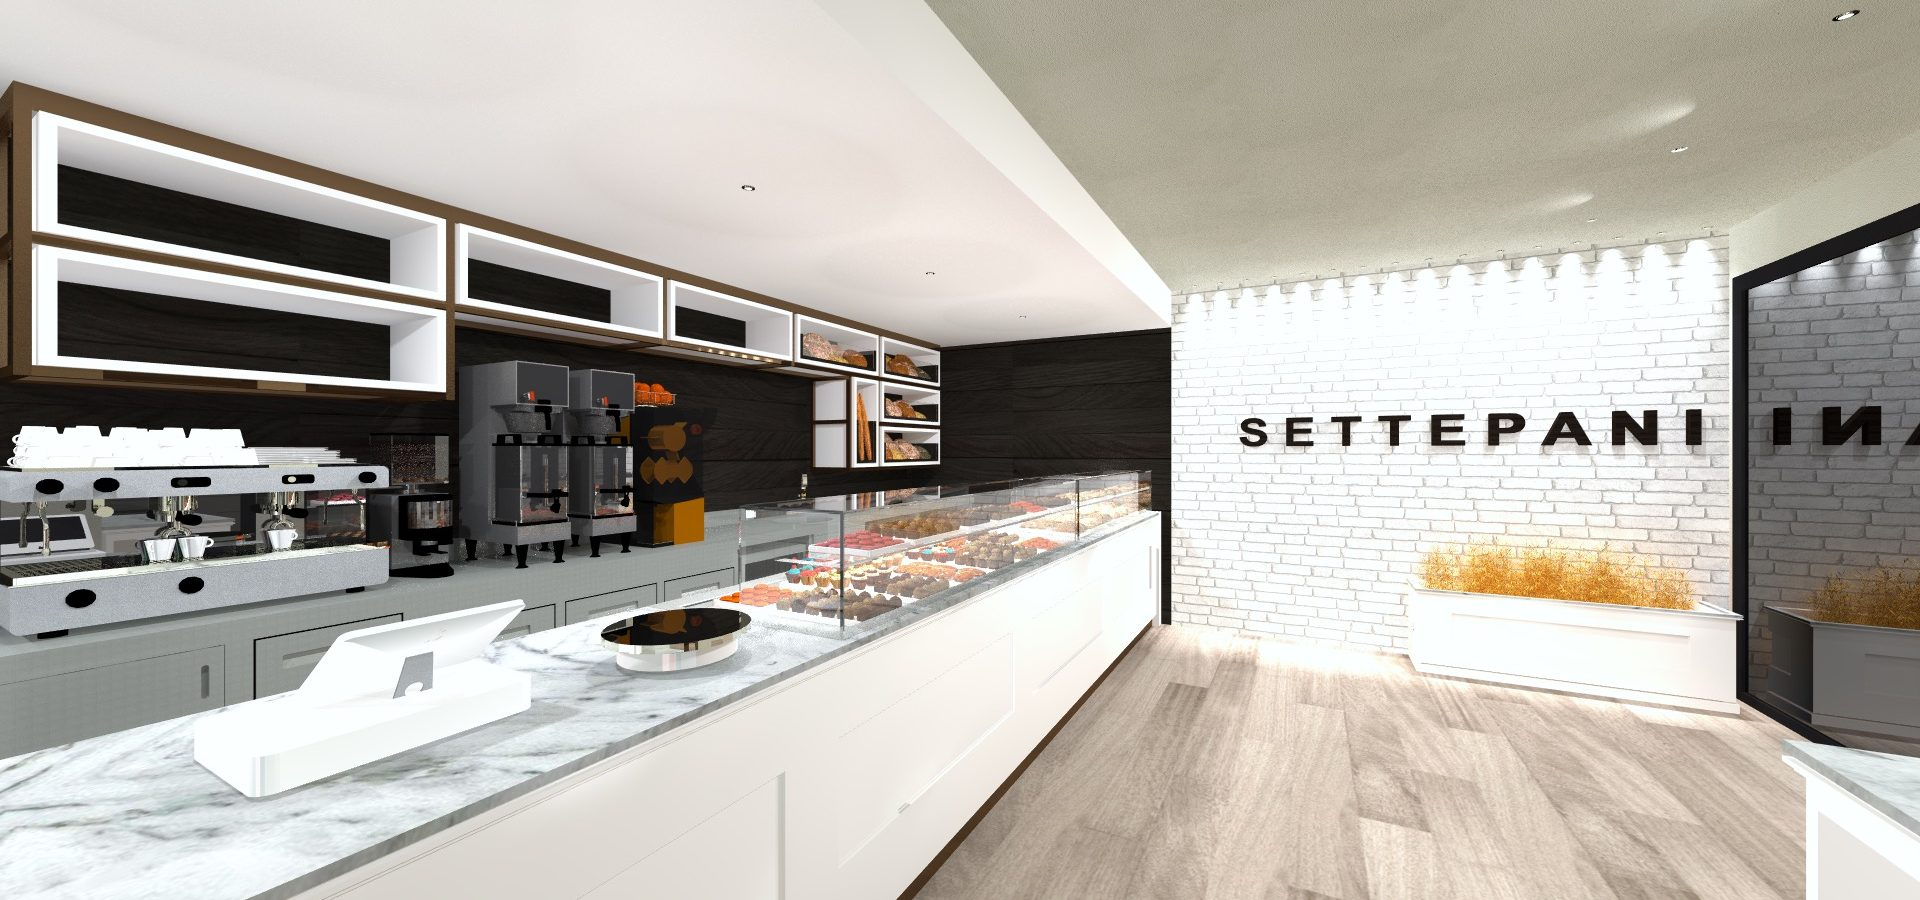 Settepani Renderings